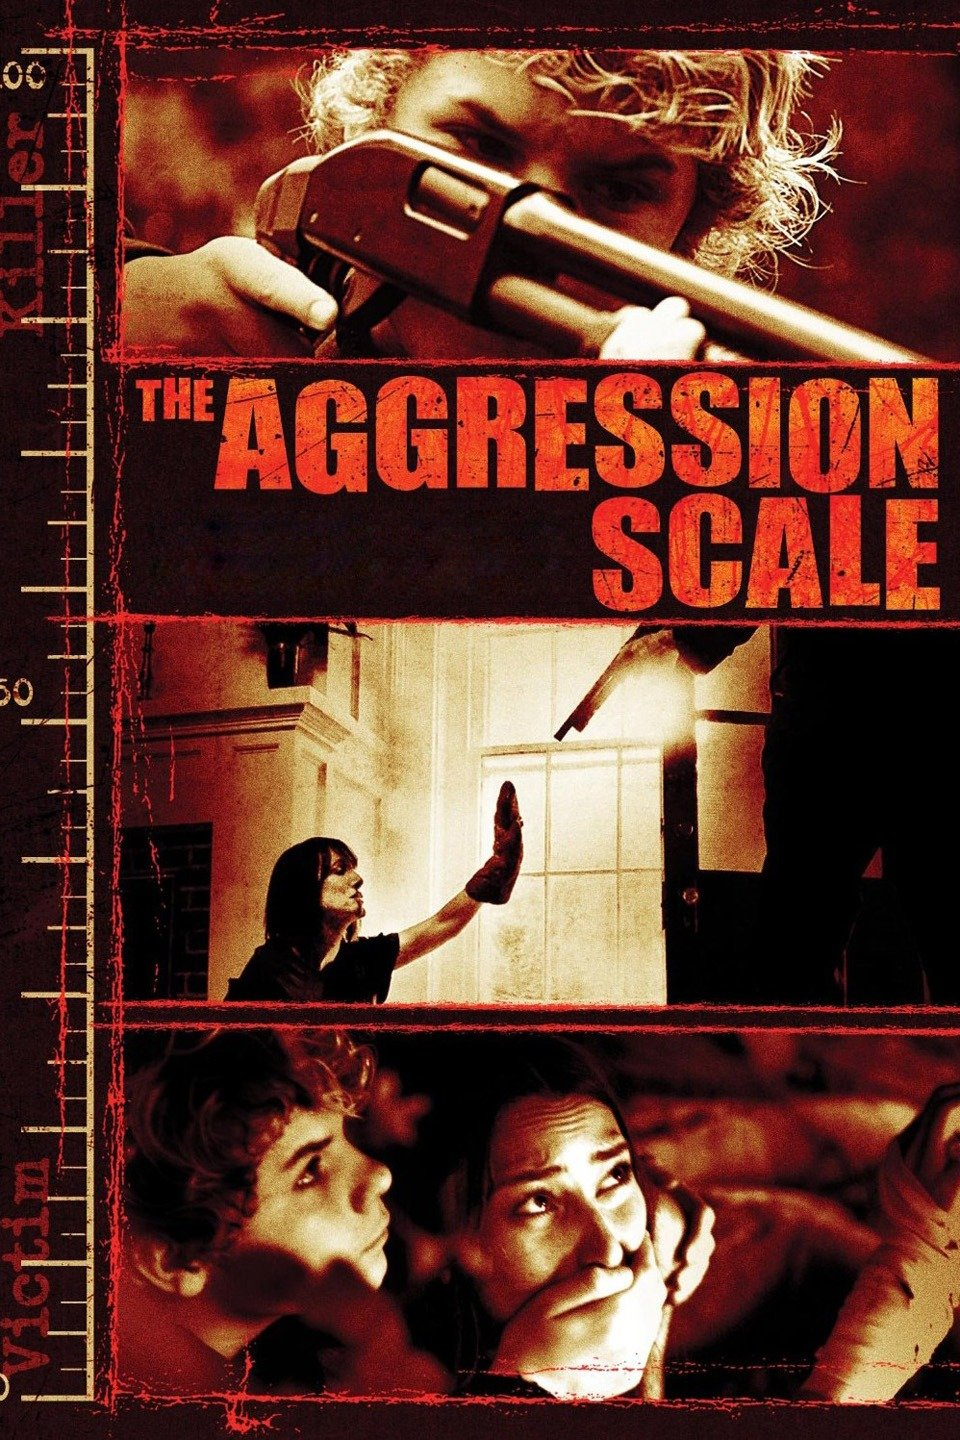 The Aggression Scale-The Aggression Scale